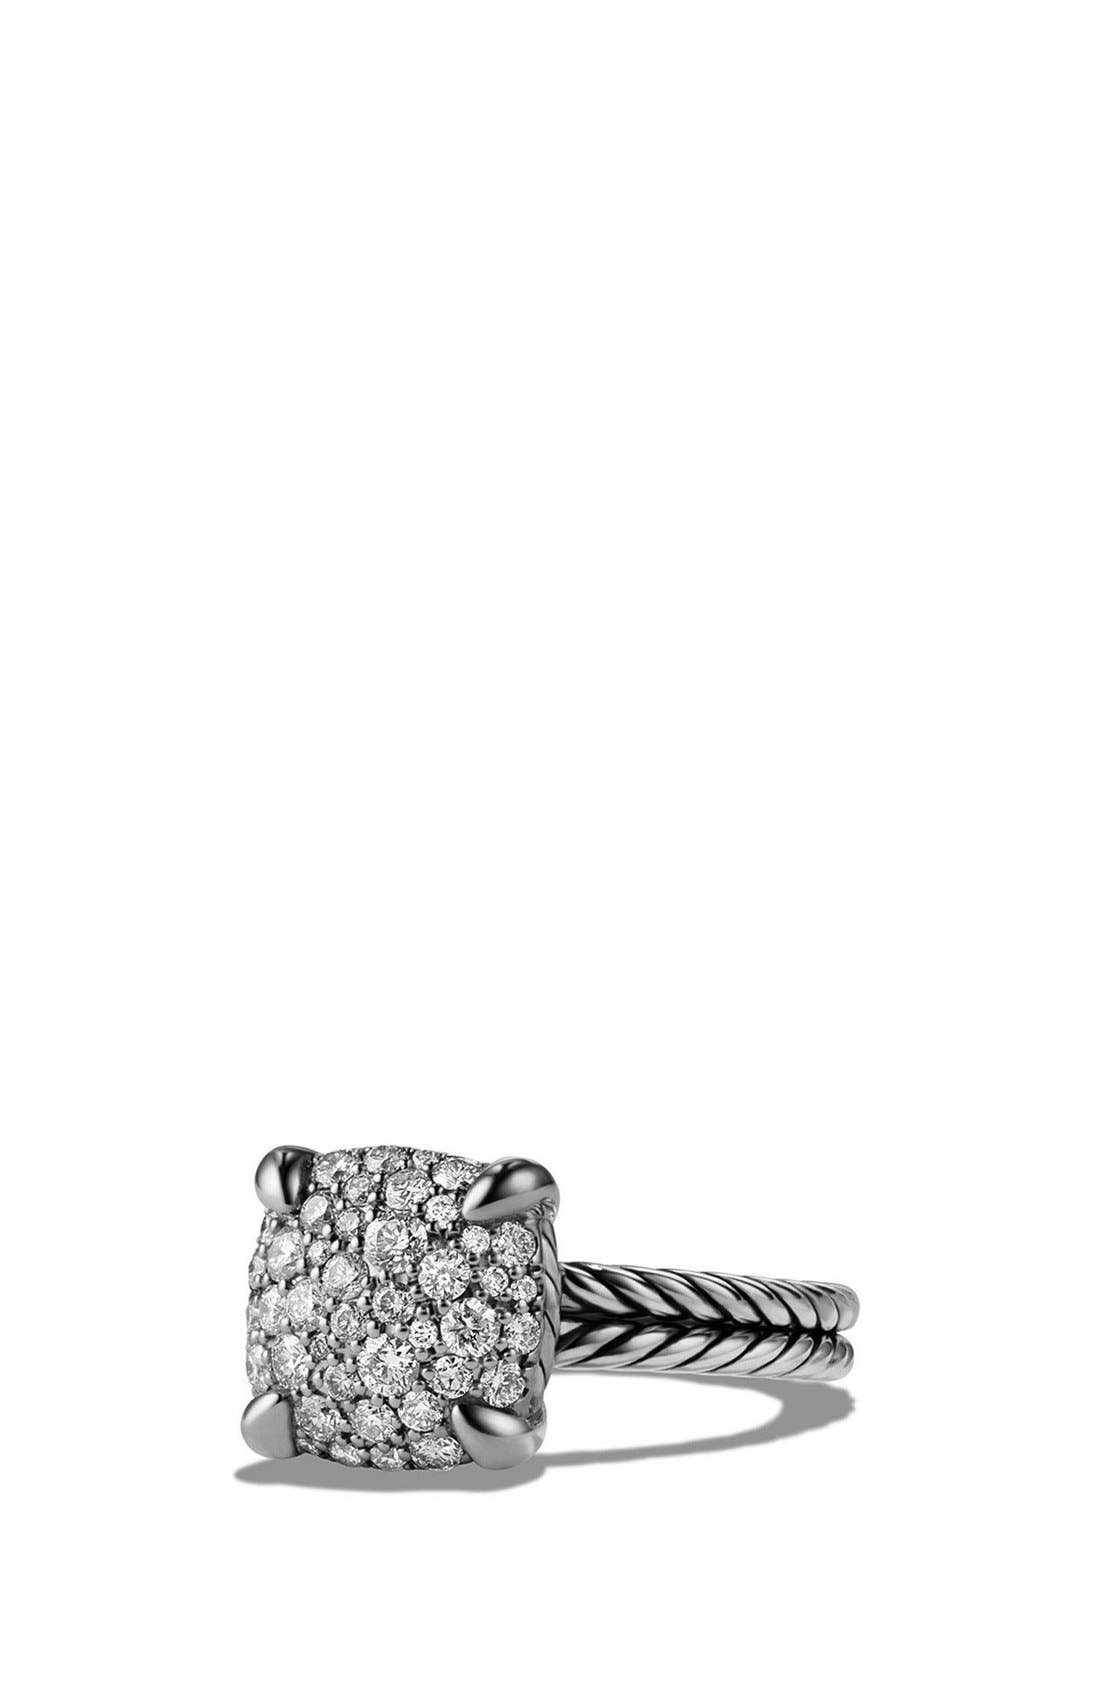 Alternate Image 1 Selected - David Yurman 'Châtelaine' Ring with Diamonds